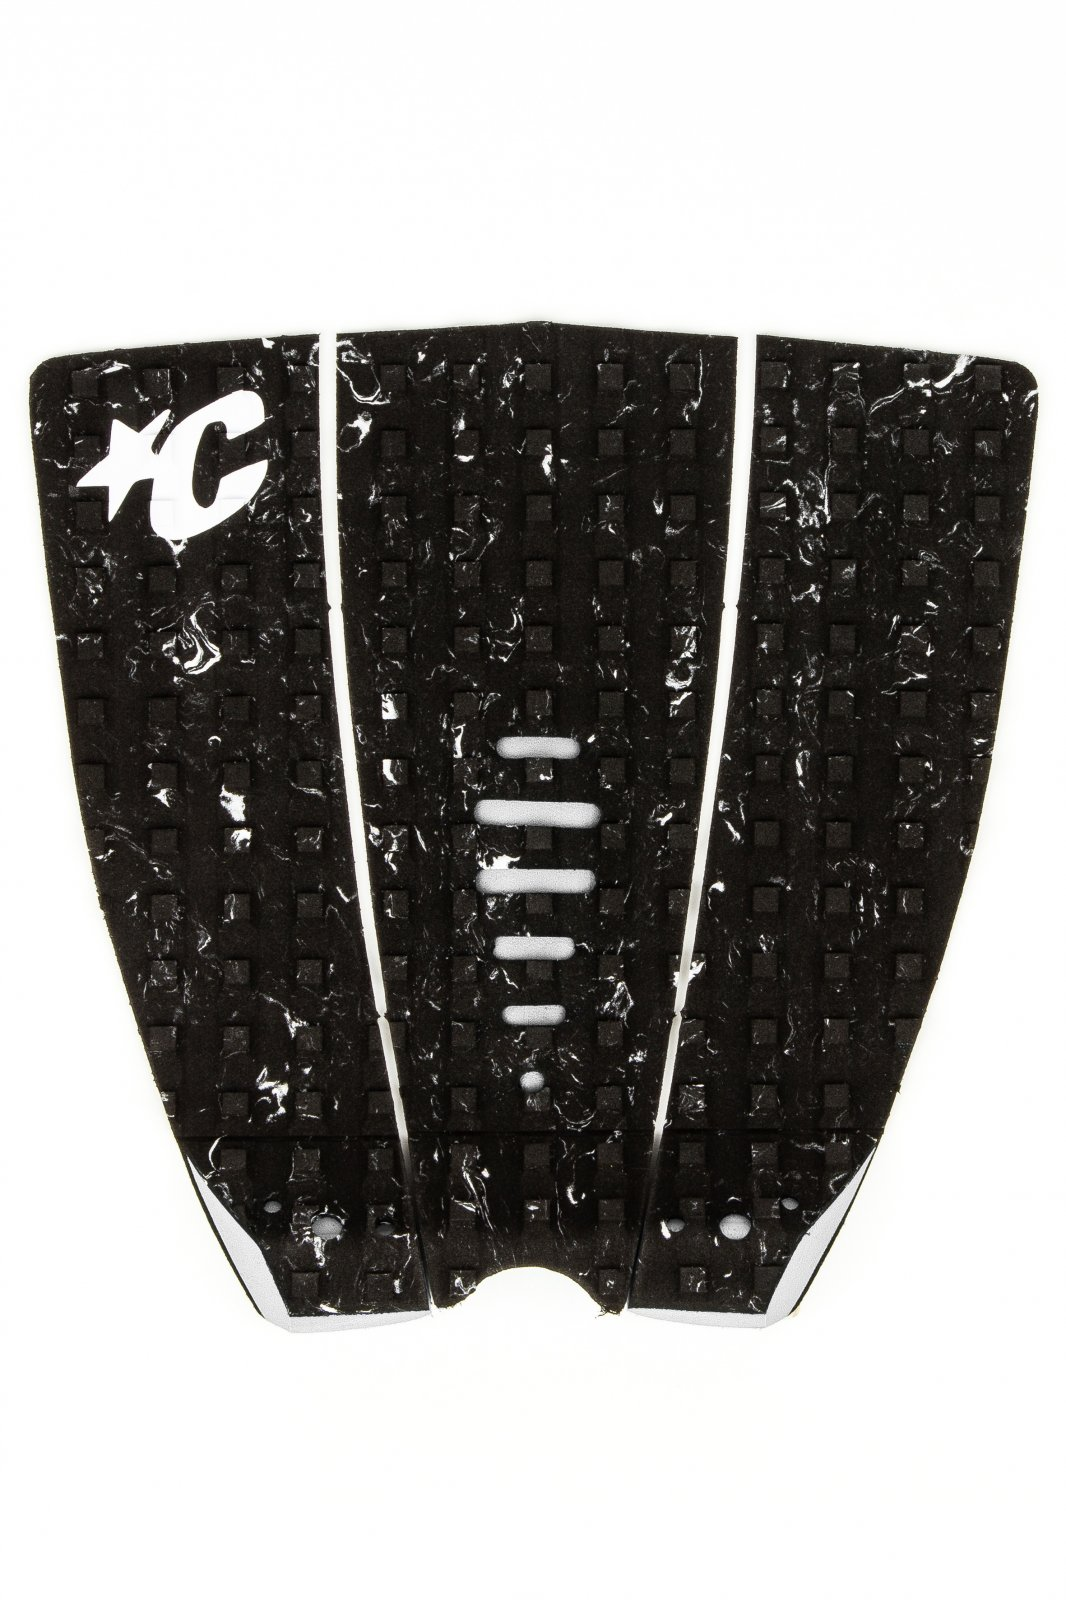 Creatures of Leisure Mick Fanning Lite '19 Traction Pad